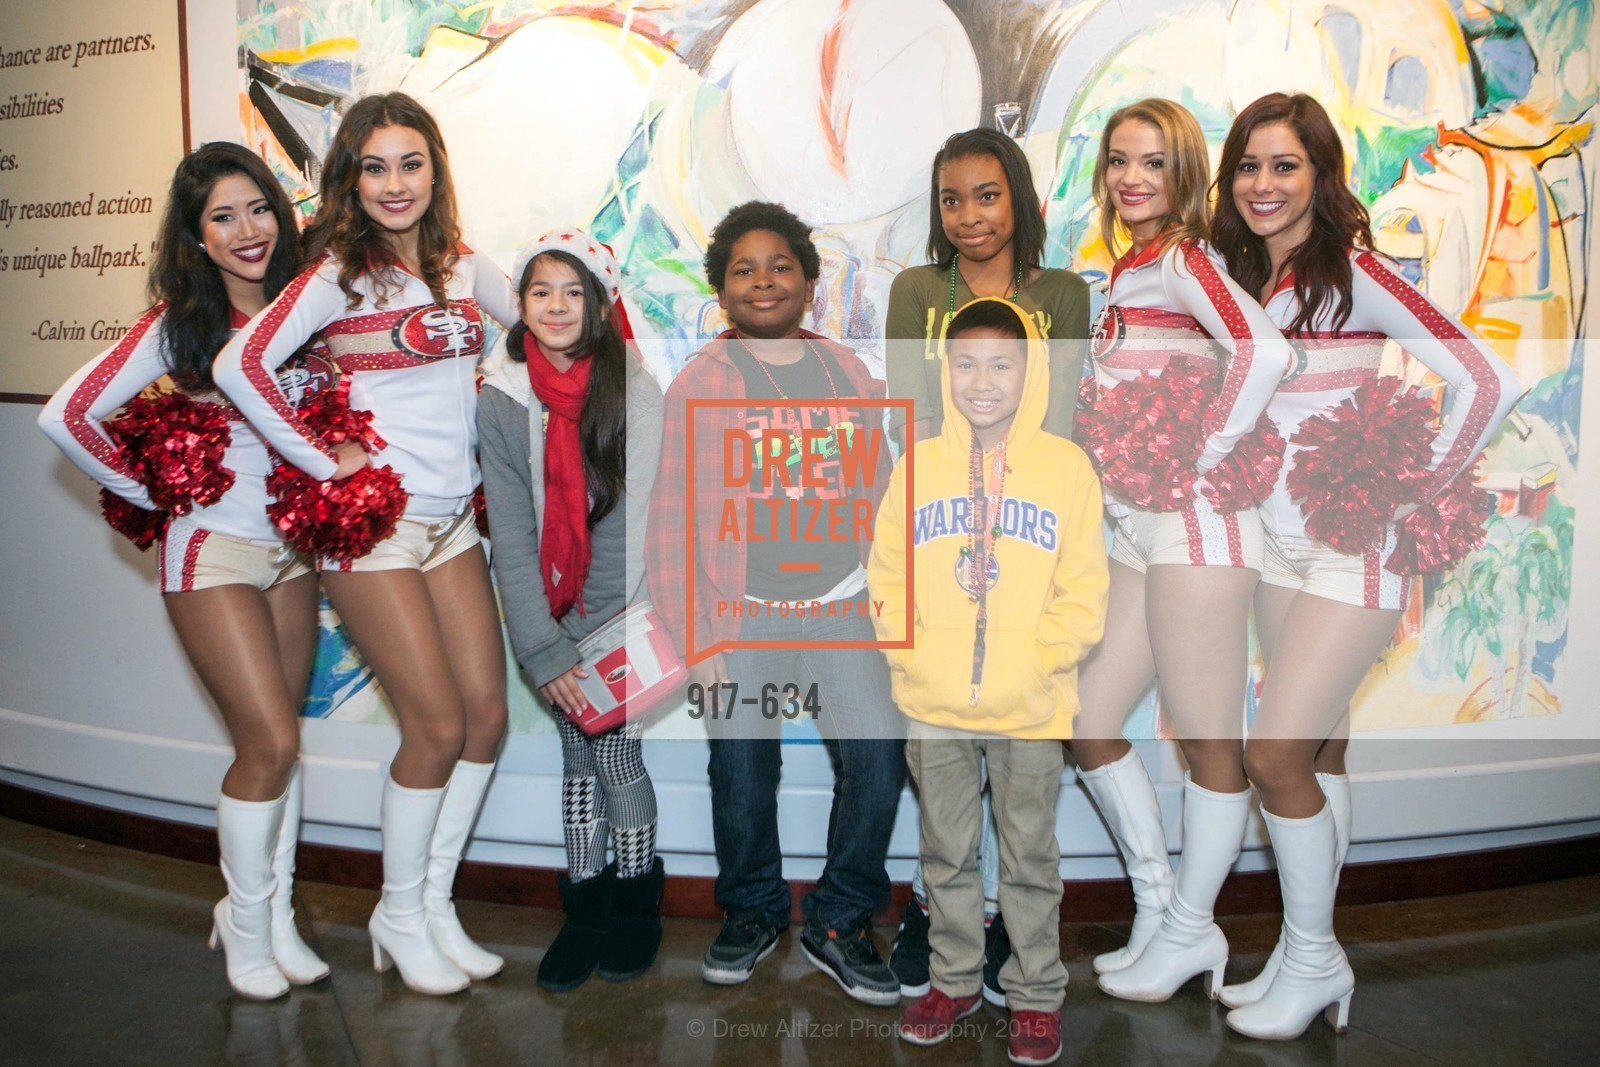 Yuli, Jordan, Carina, Casy, Holiday Heroes 2015, AT&T Park, December 7th, 2015,Drew Altizer, Drew Altizer Photography, full-service agency, private events, San Francisco photographer, photographer california